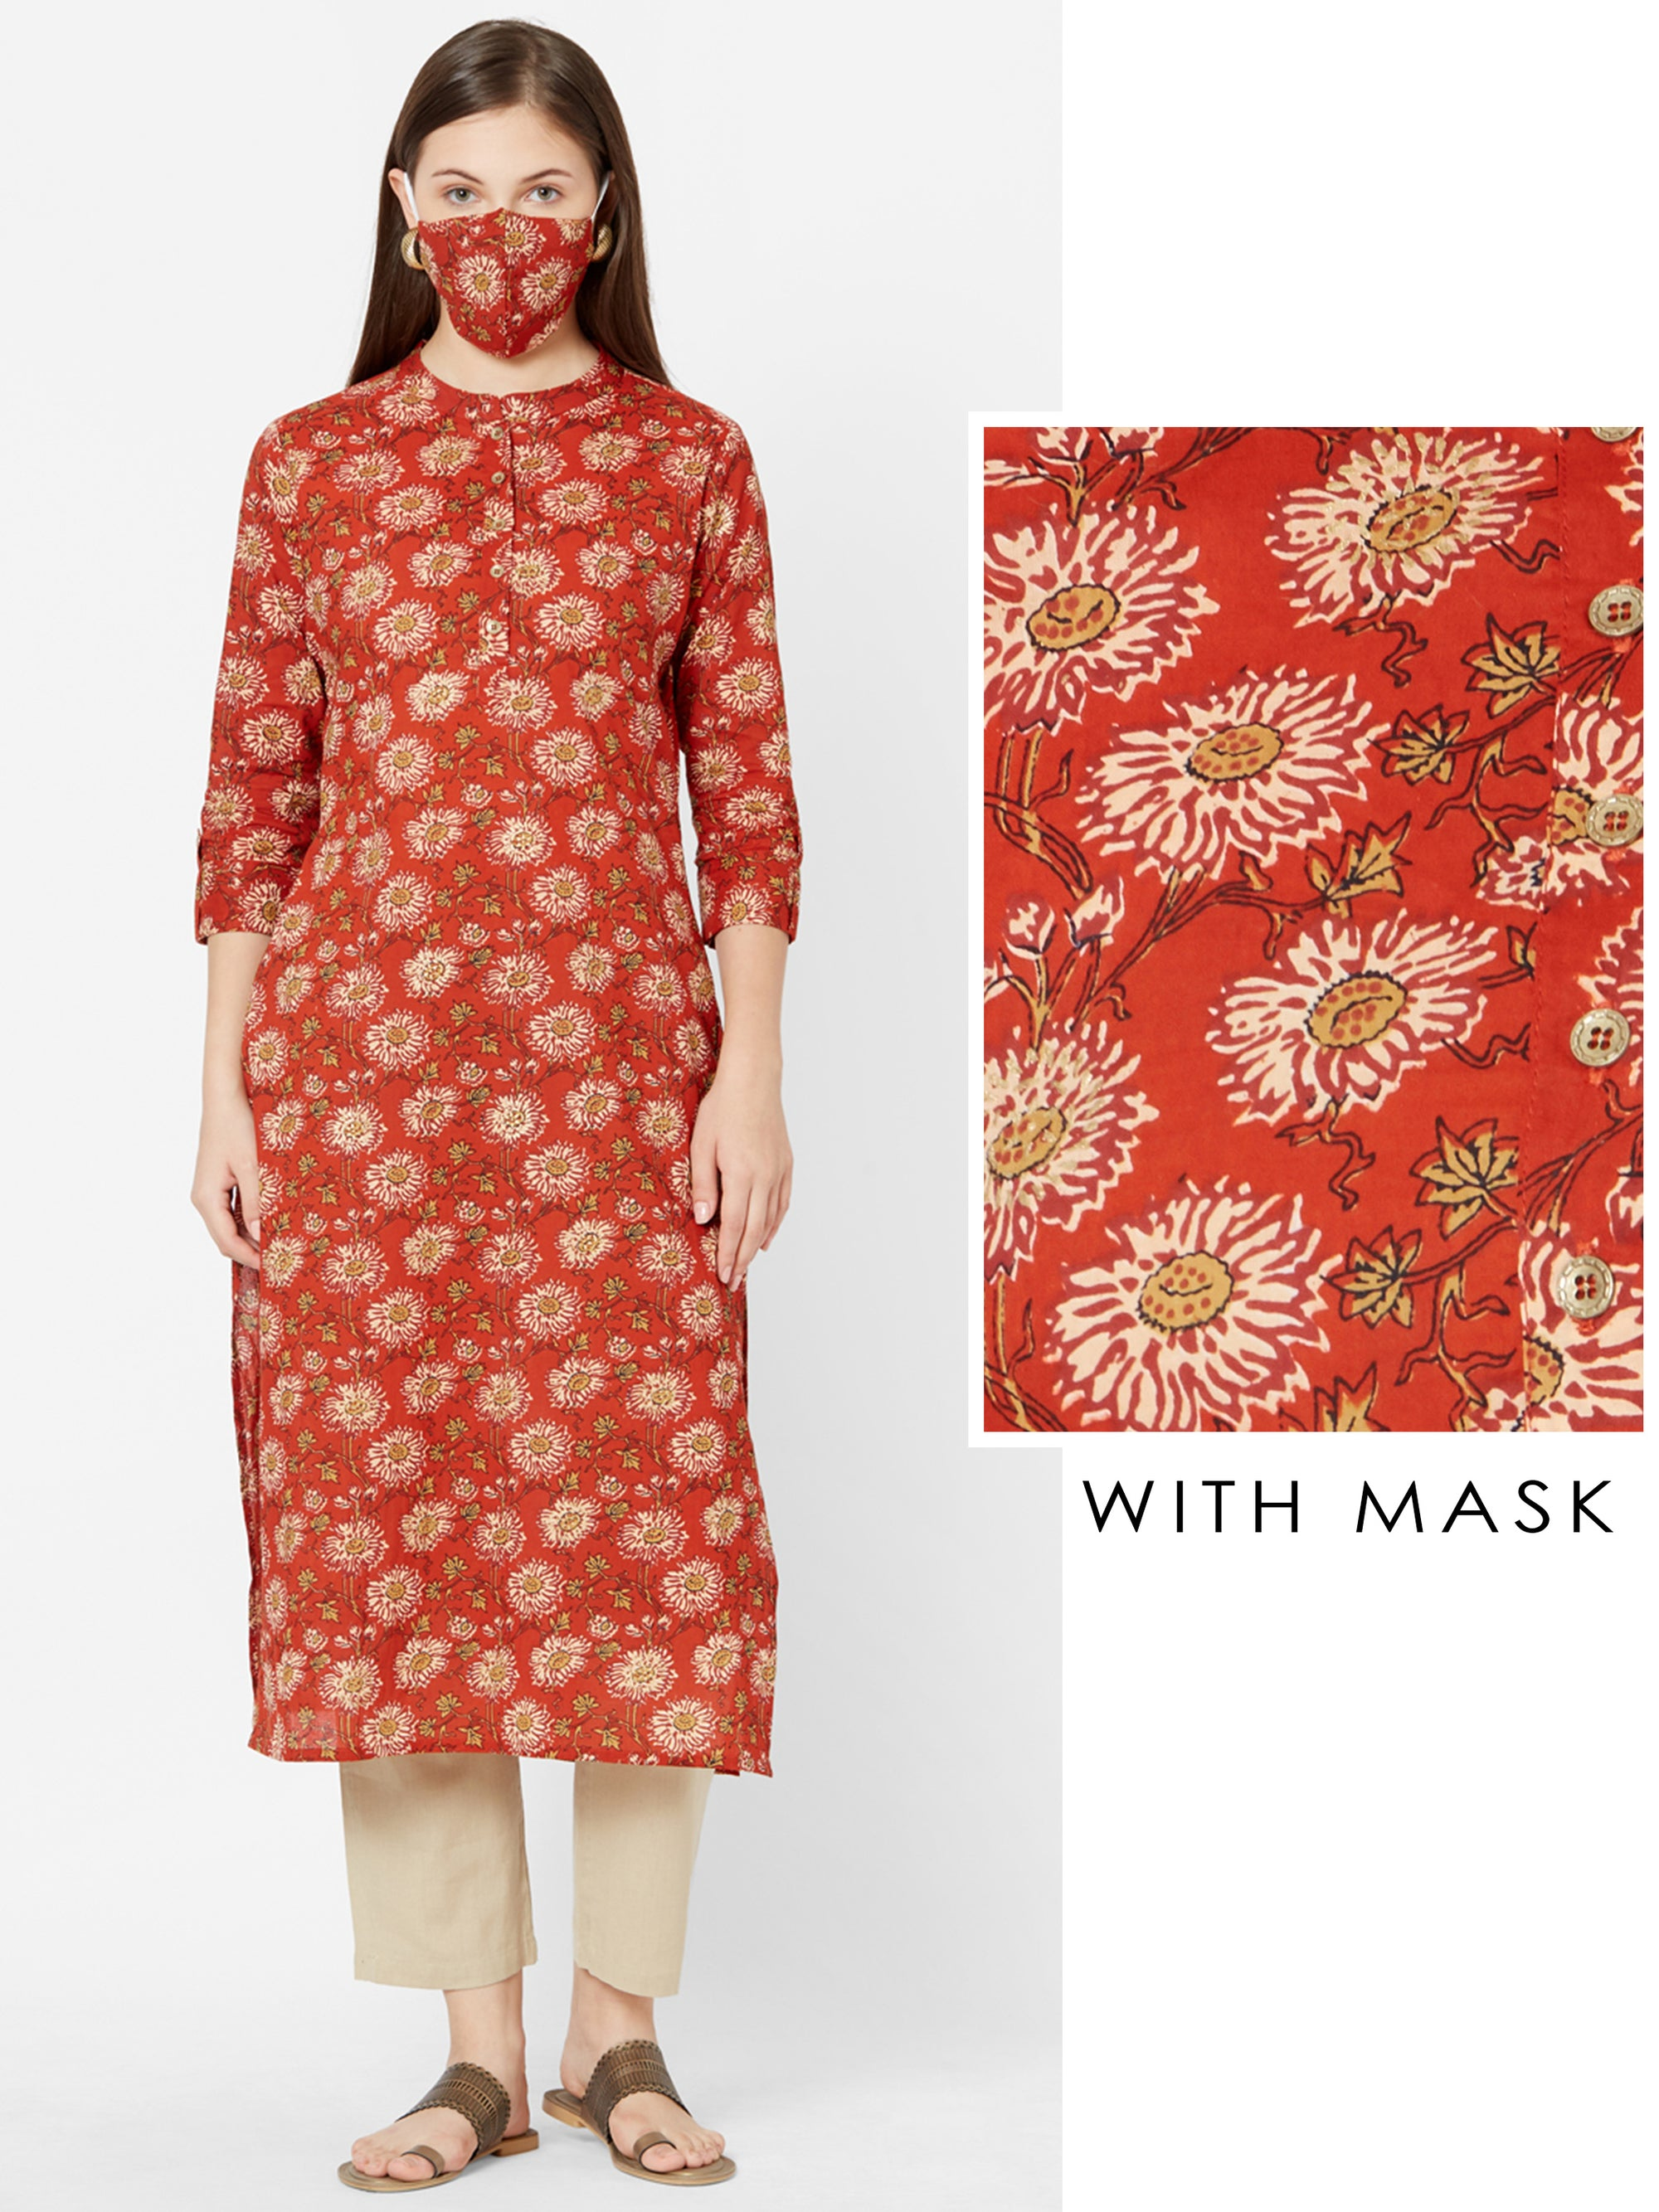 Elegant Floral Printed Cotton Kurta with Matching Mask – Rust